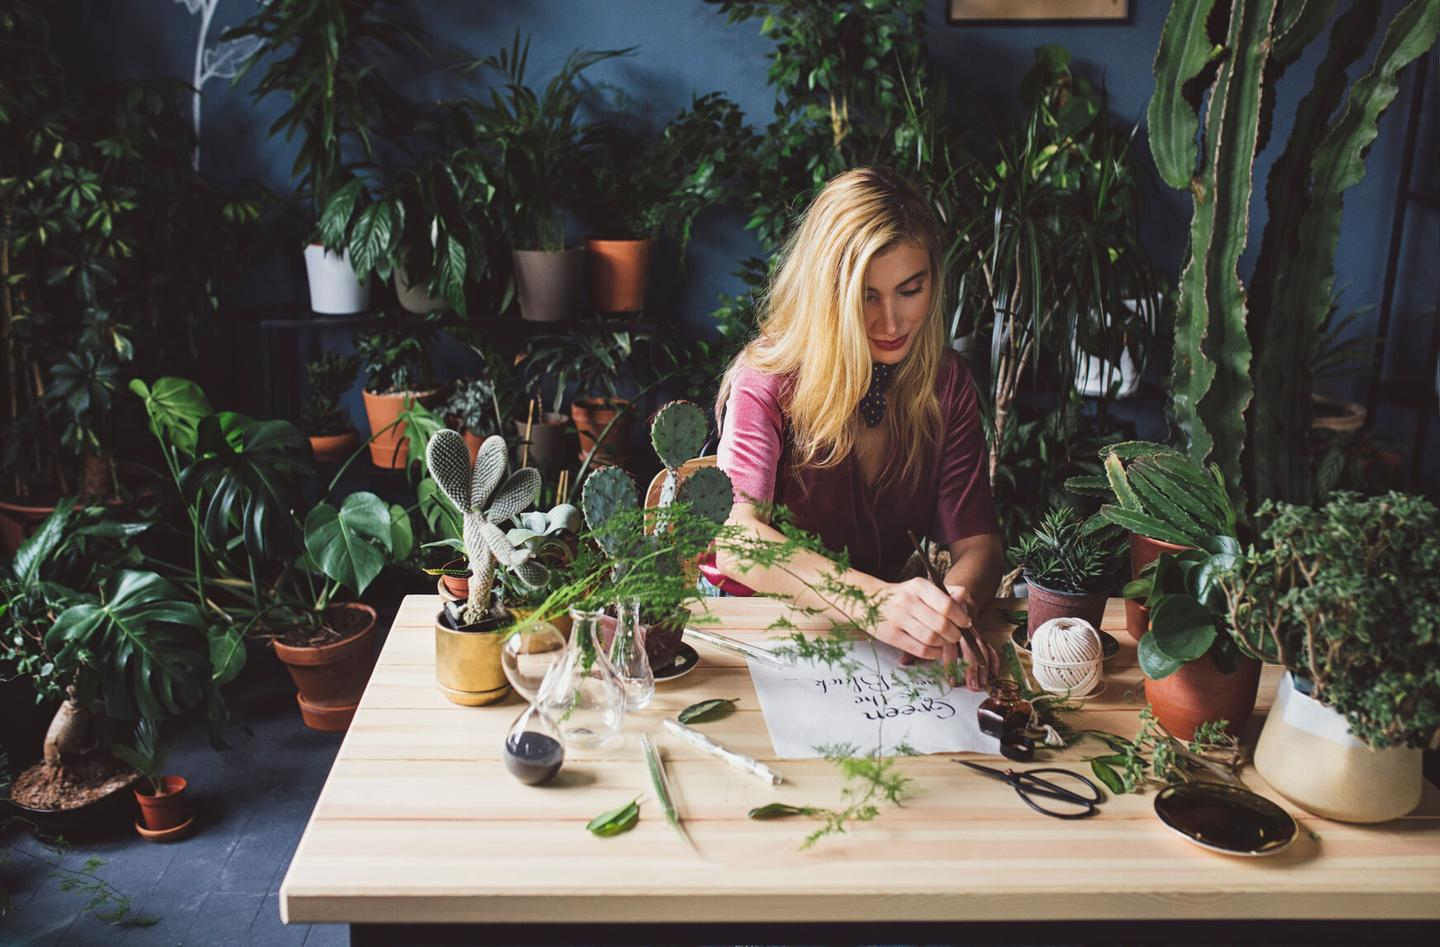 woman arranging plants thinking about choosing her perfect domain name